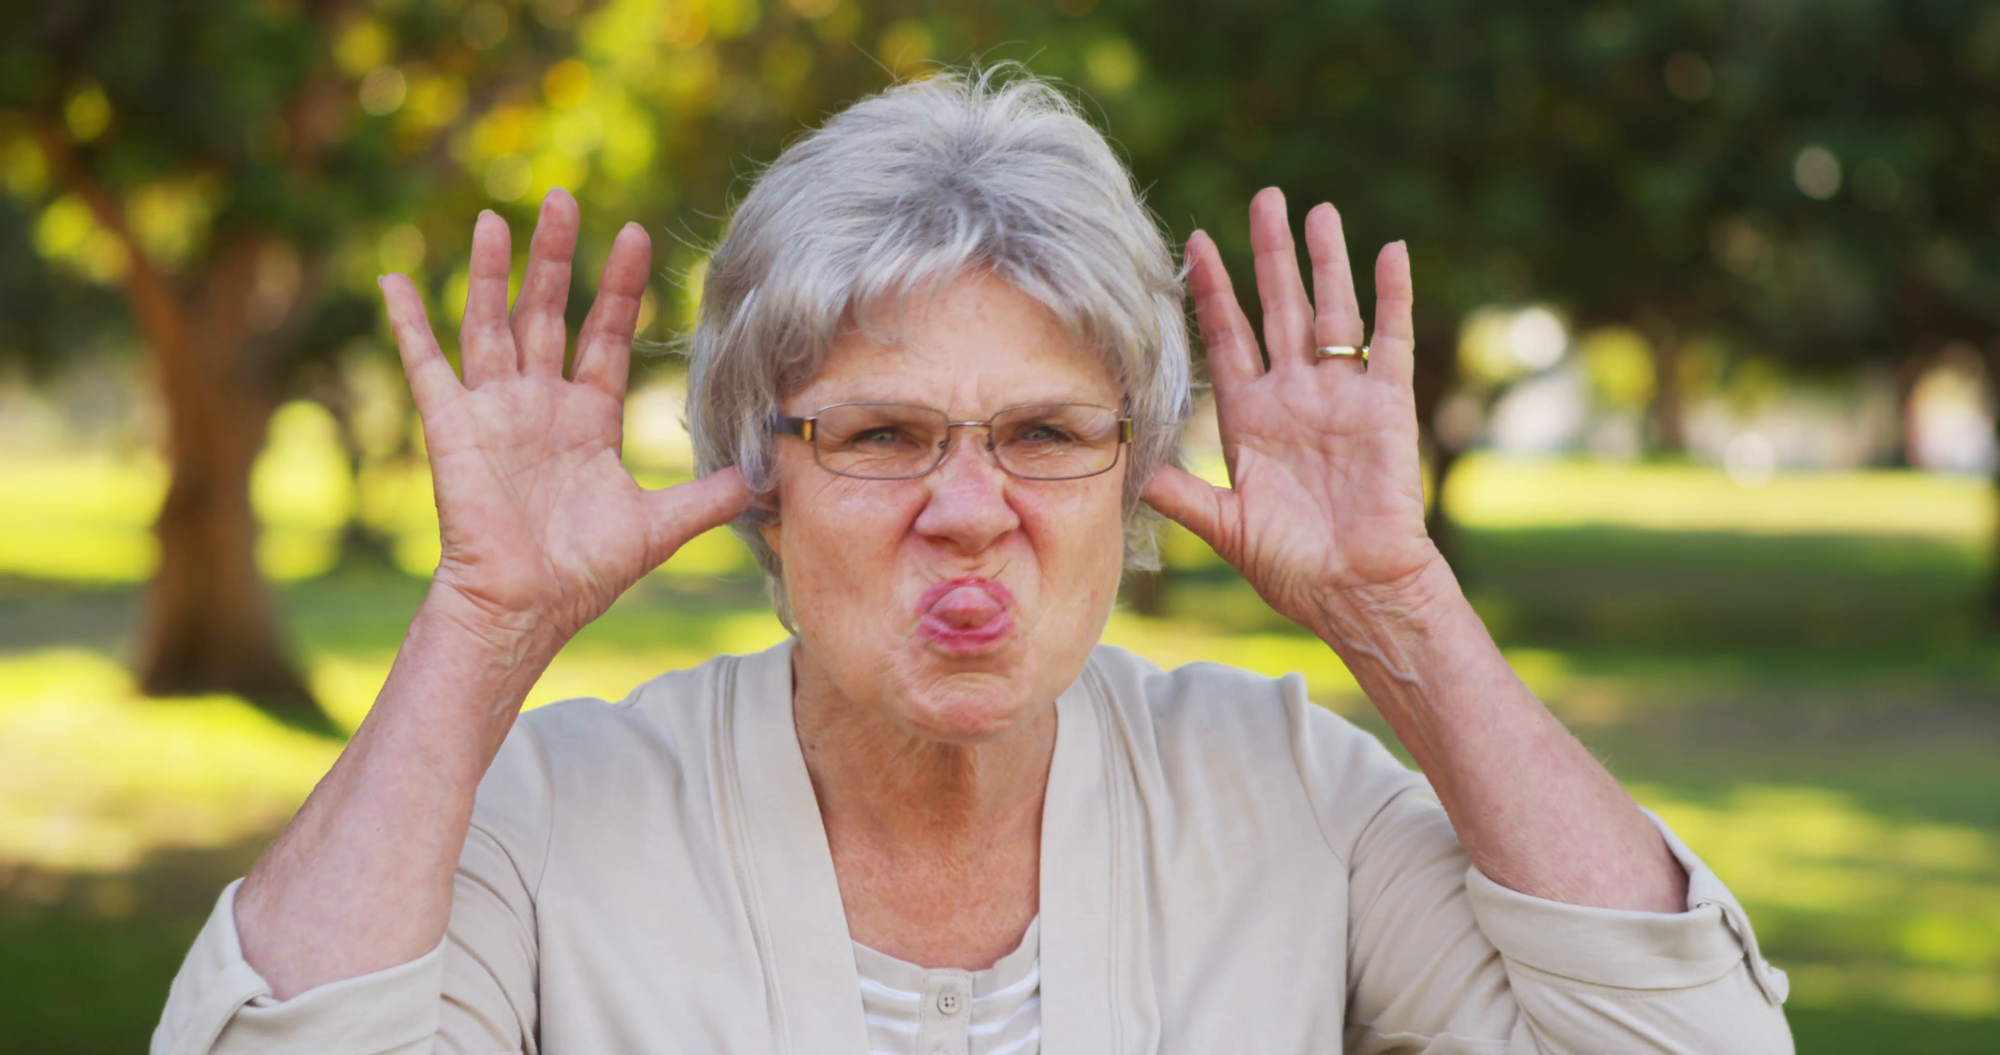 silly-grandma-making-funny-faces-at-the-camera_eybj0uifl__F0000